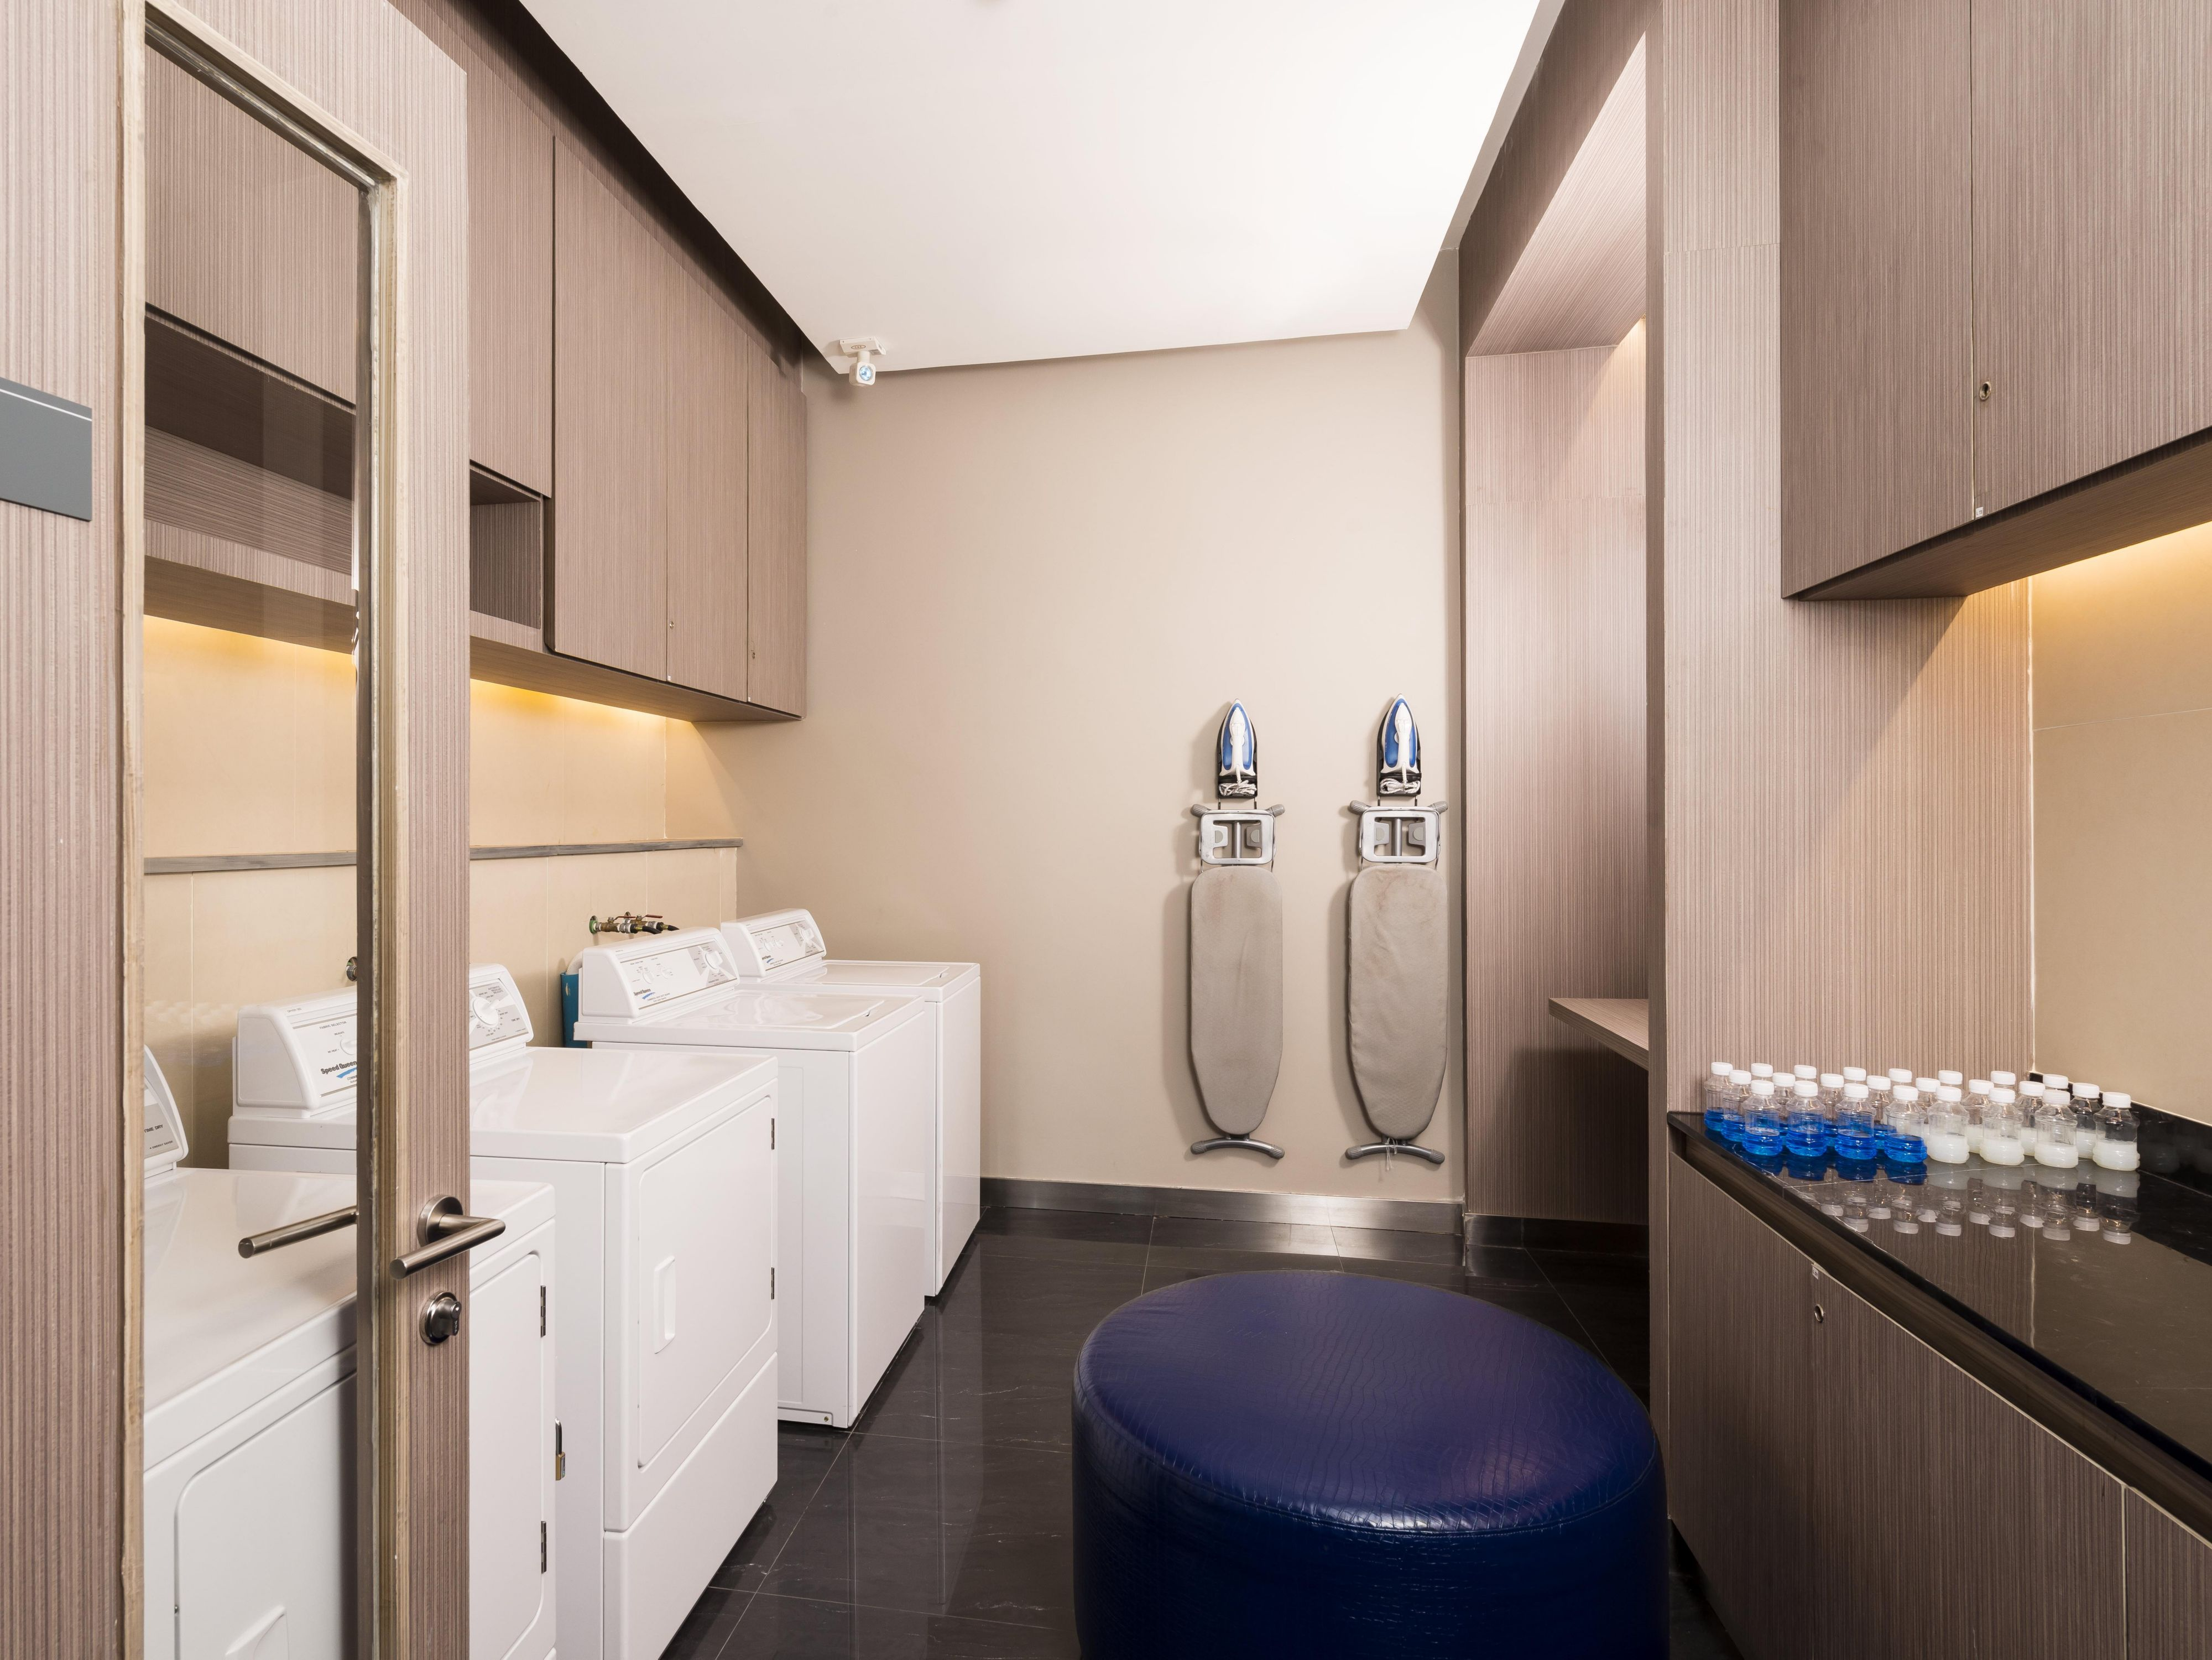 D.I.Y. Laundry Room - Holiday Inn Express Bangkok Siam